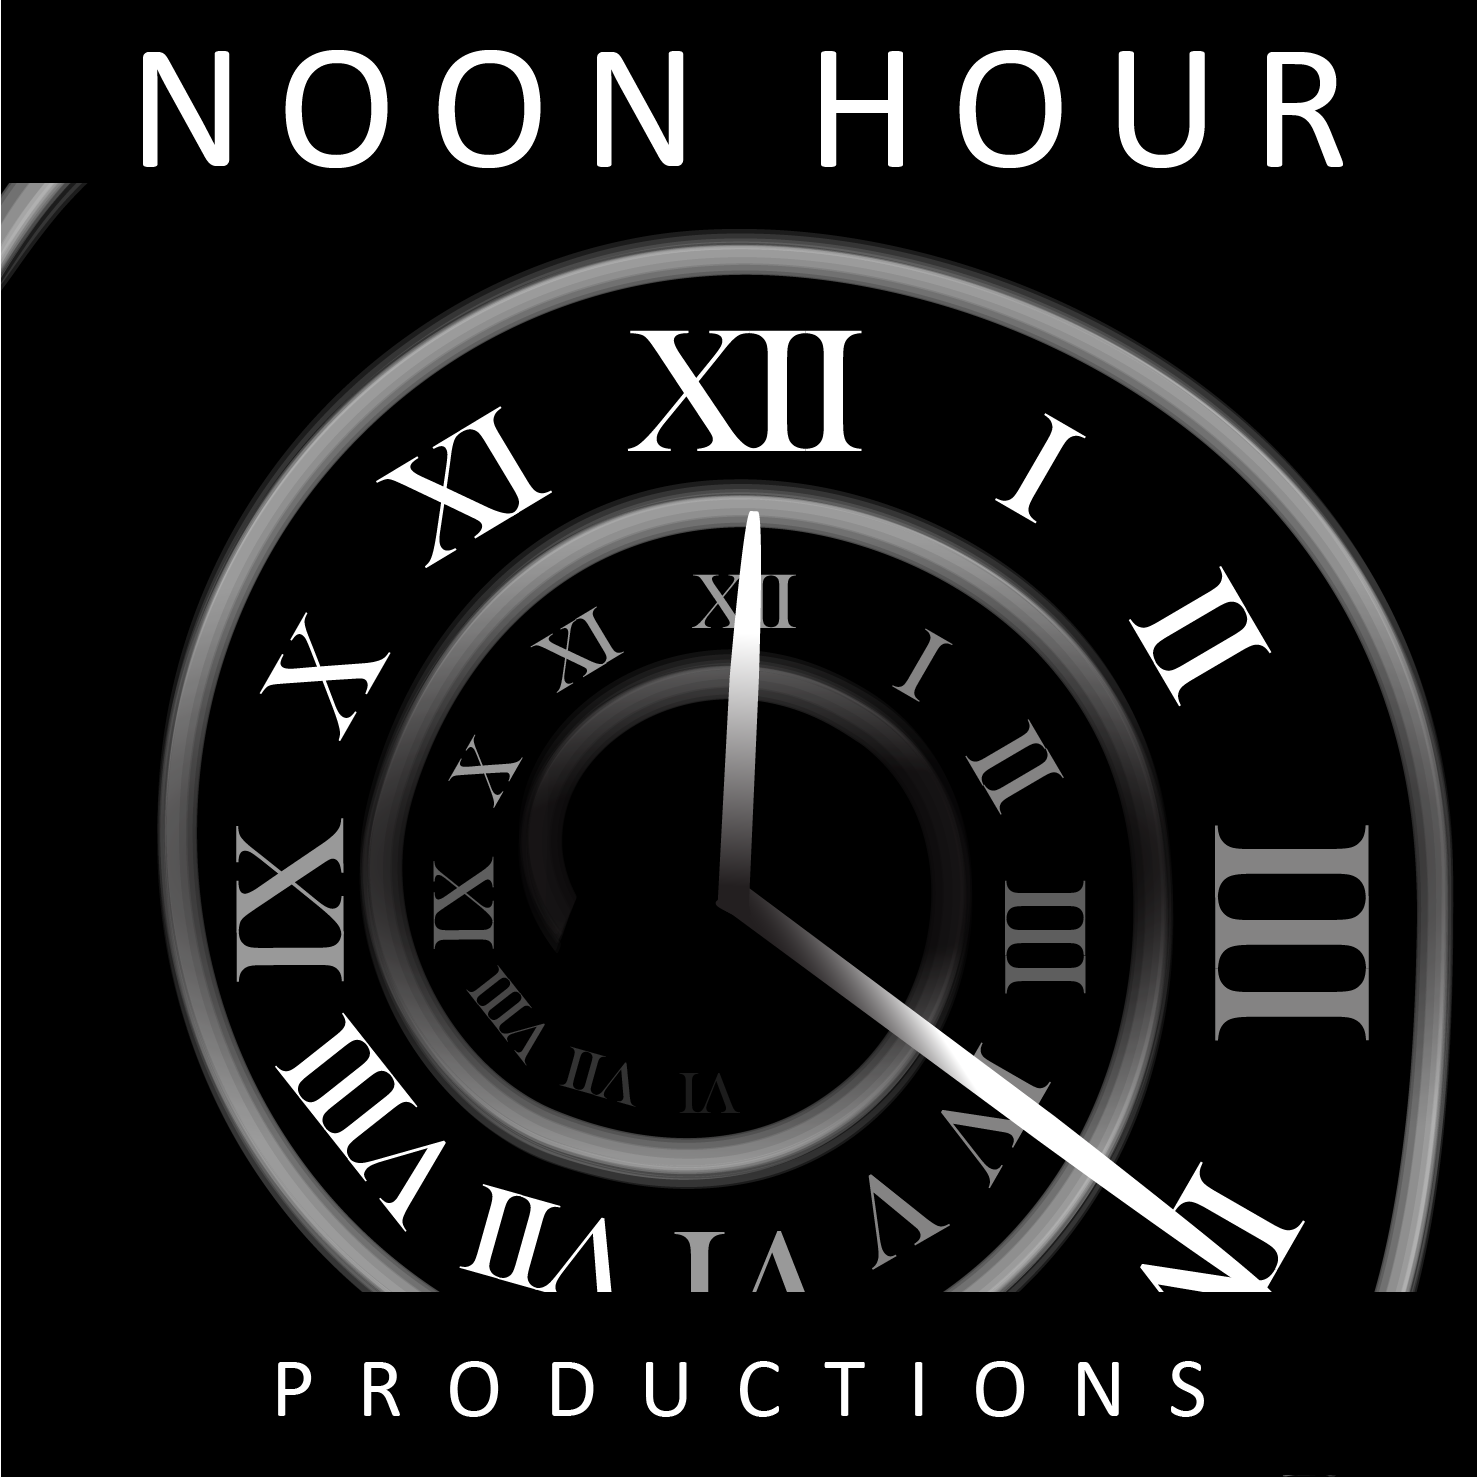 Noon Hour Productions